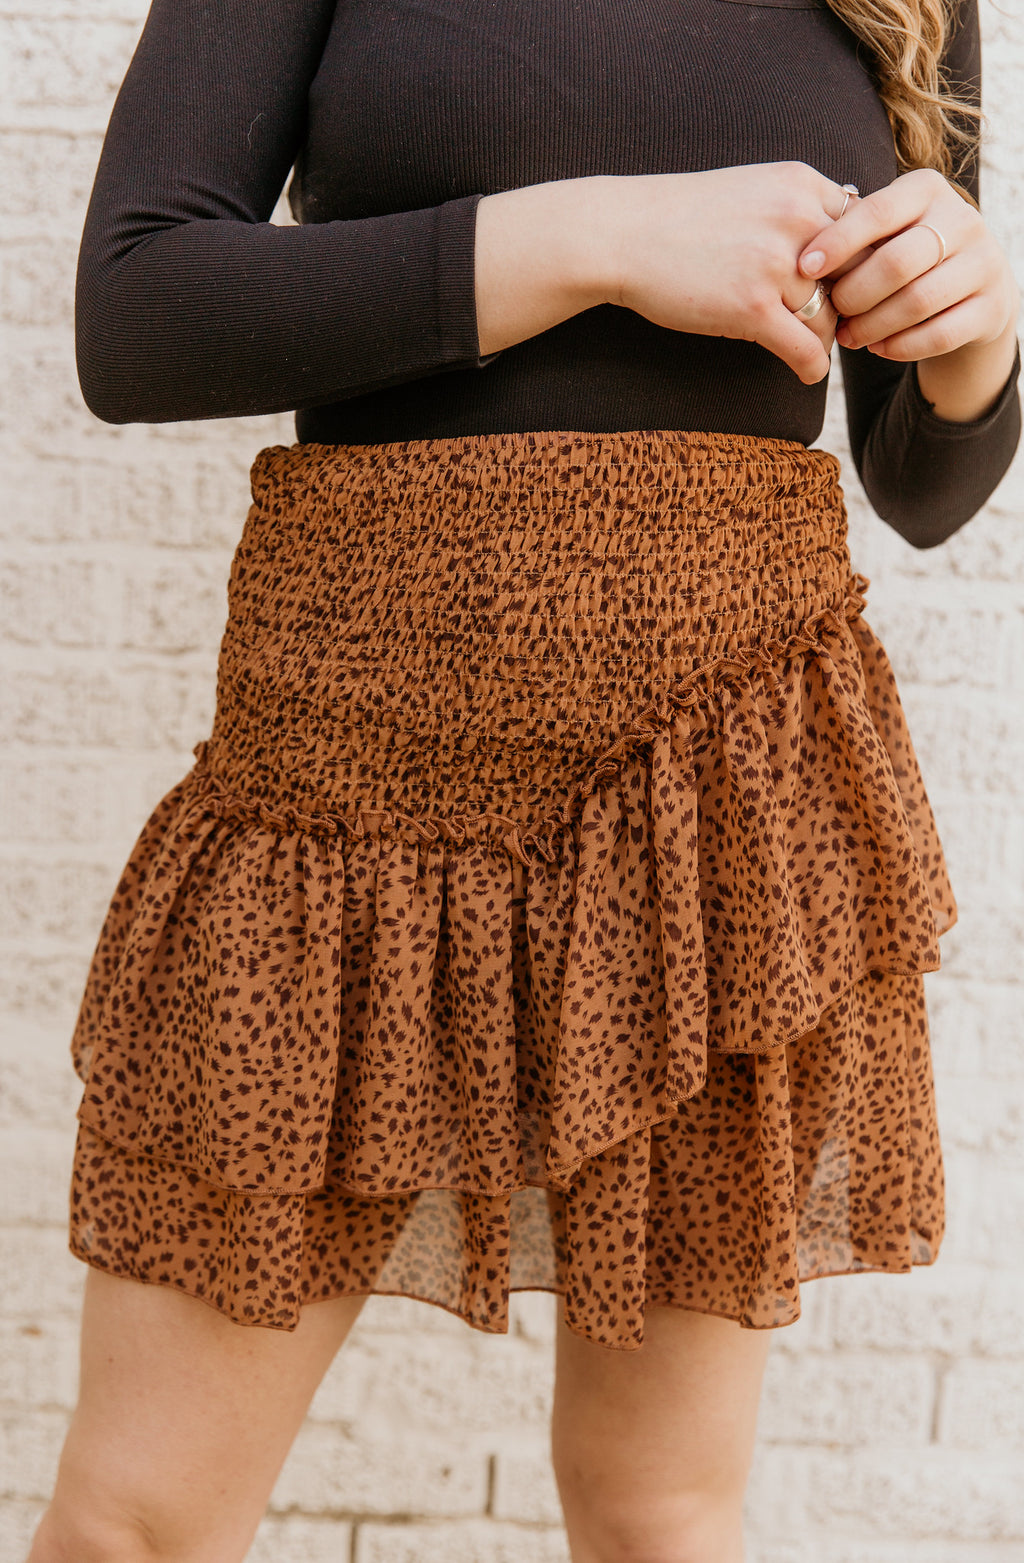 CHASING YOU CHEETAH SKIRT